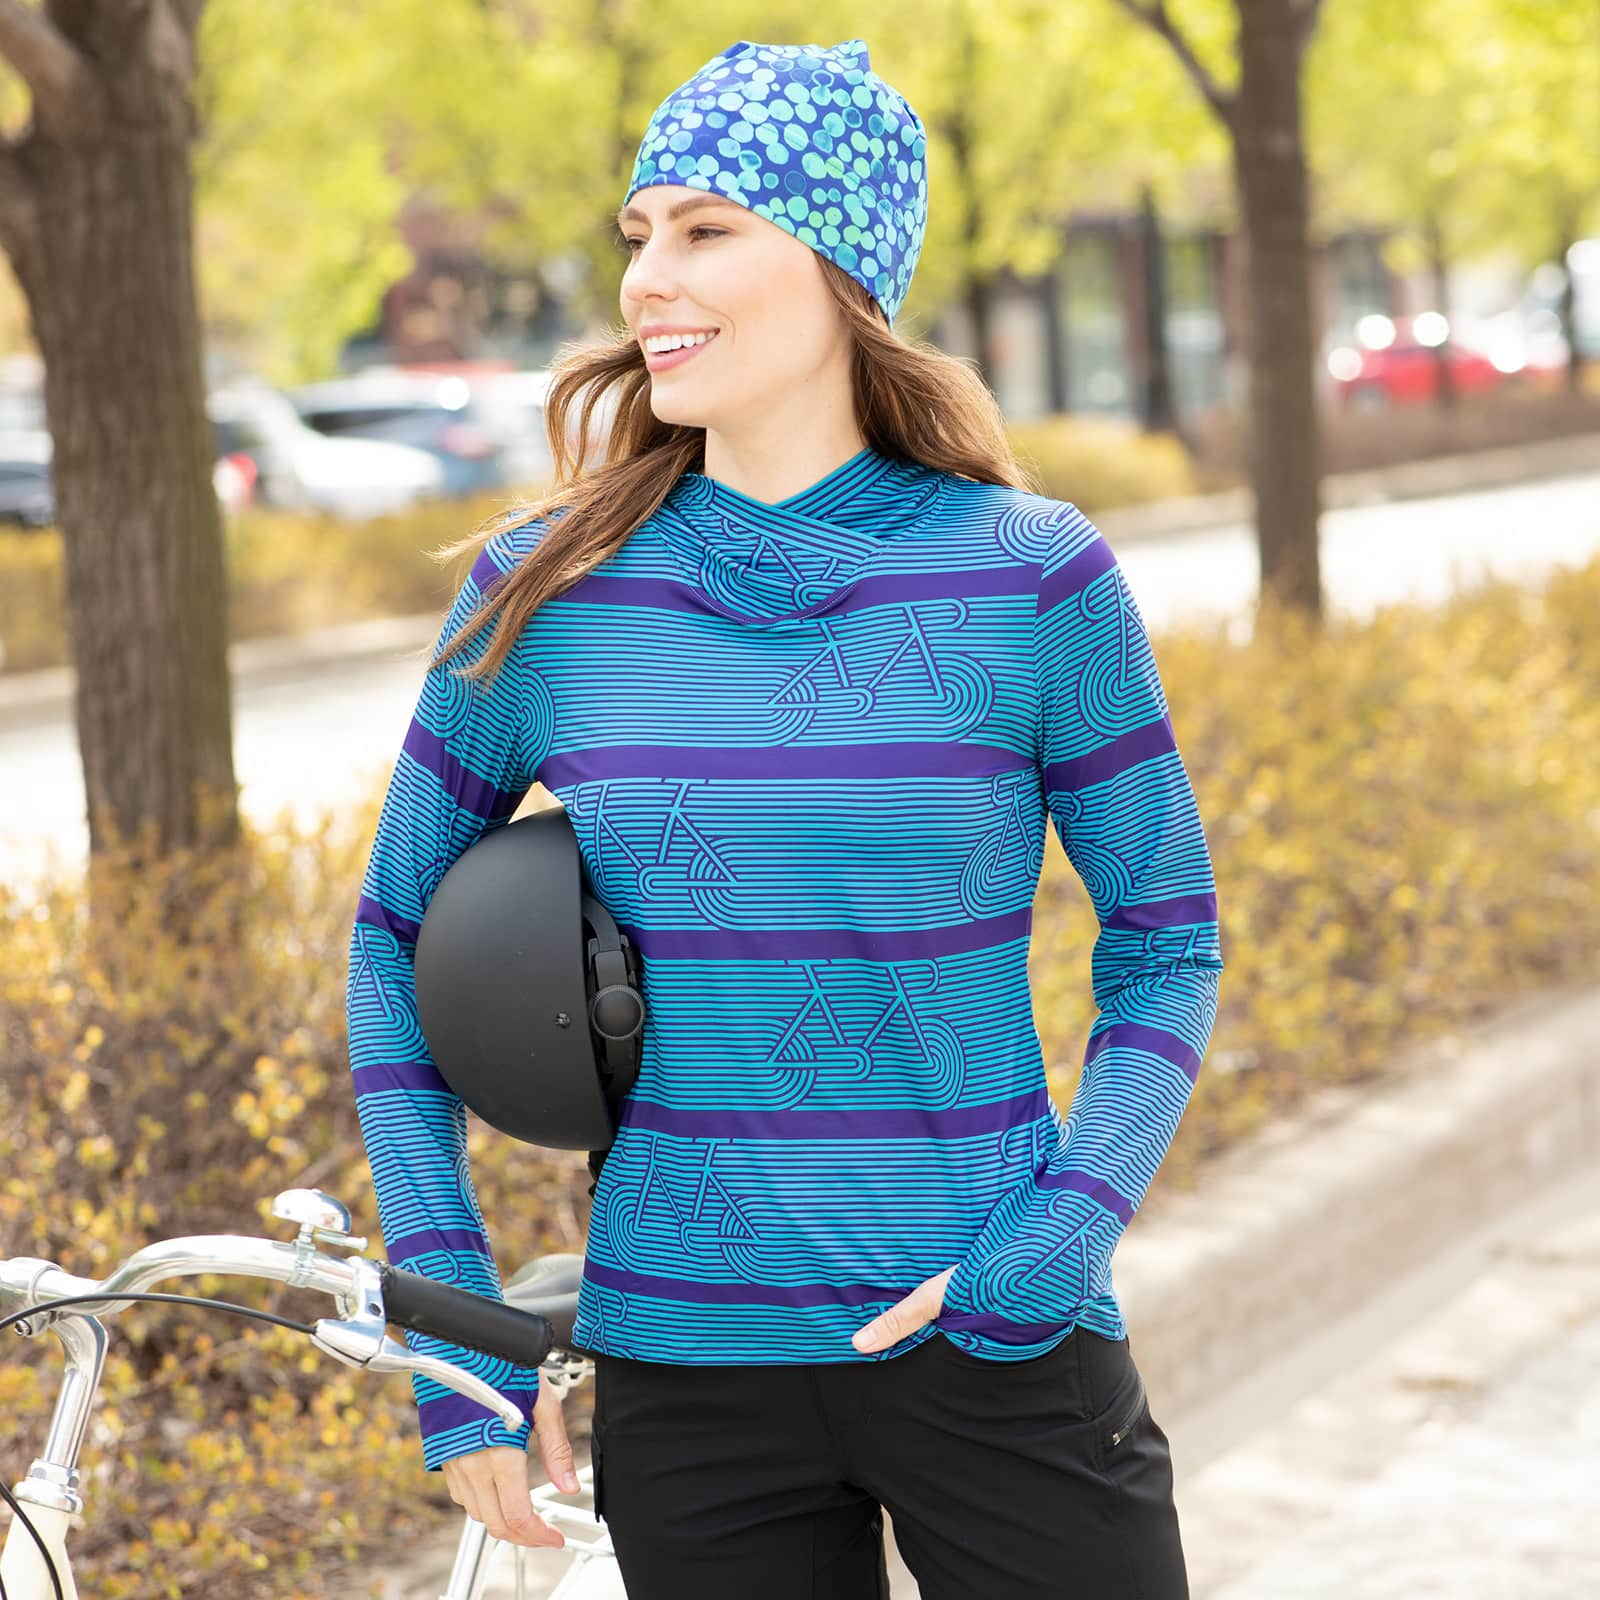 Soleil Hoody makes a great gift for cyclists and others